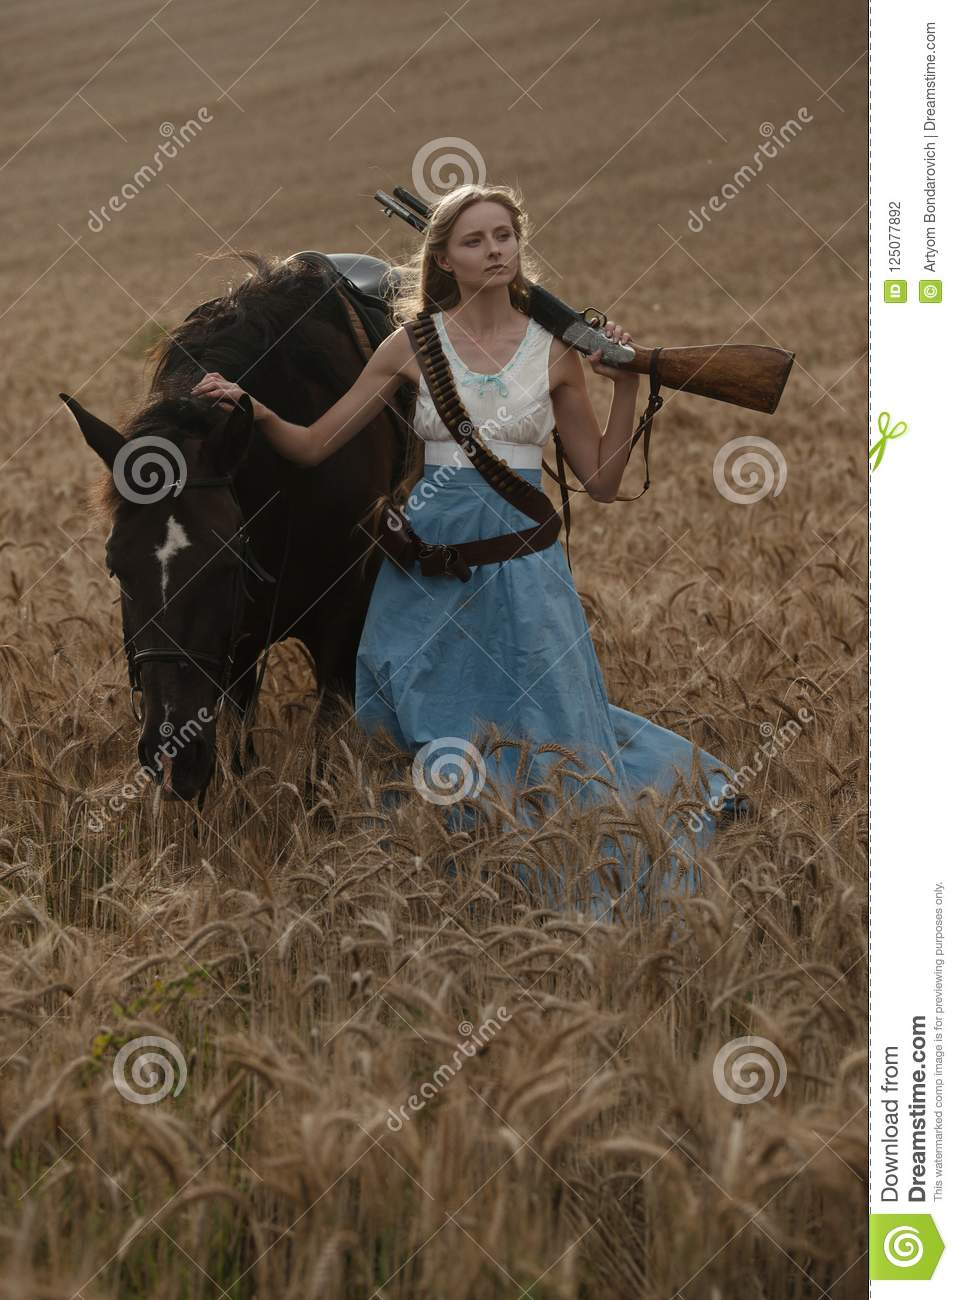 Portrait of a beautiful female cowgirl with shotgun from wild west riding a horse in the outback.